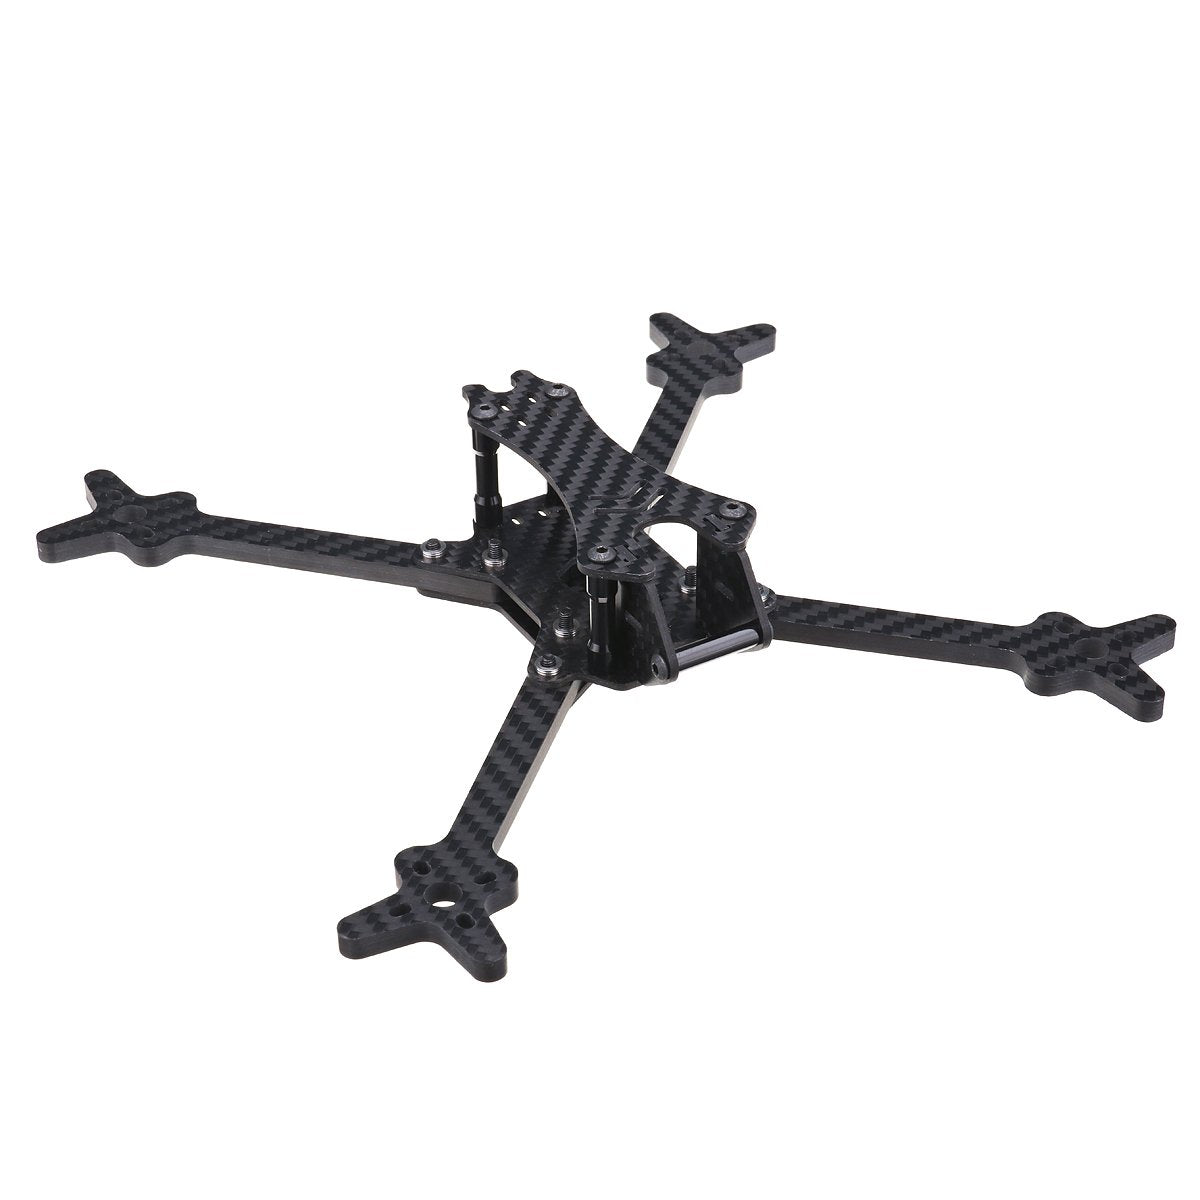 URUAV UF6 5 Inch 220mm Carbon Fiber FPV Racing Frame Kit 5mm Arm Plate for RC Drone